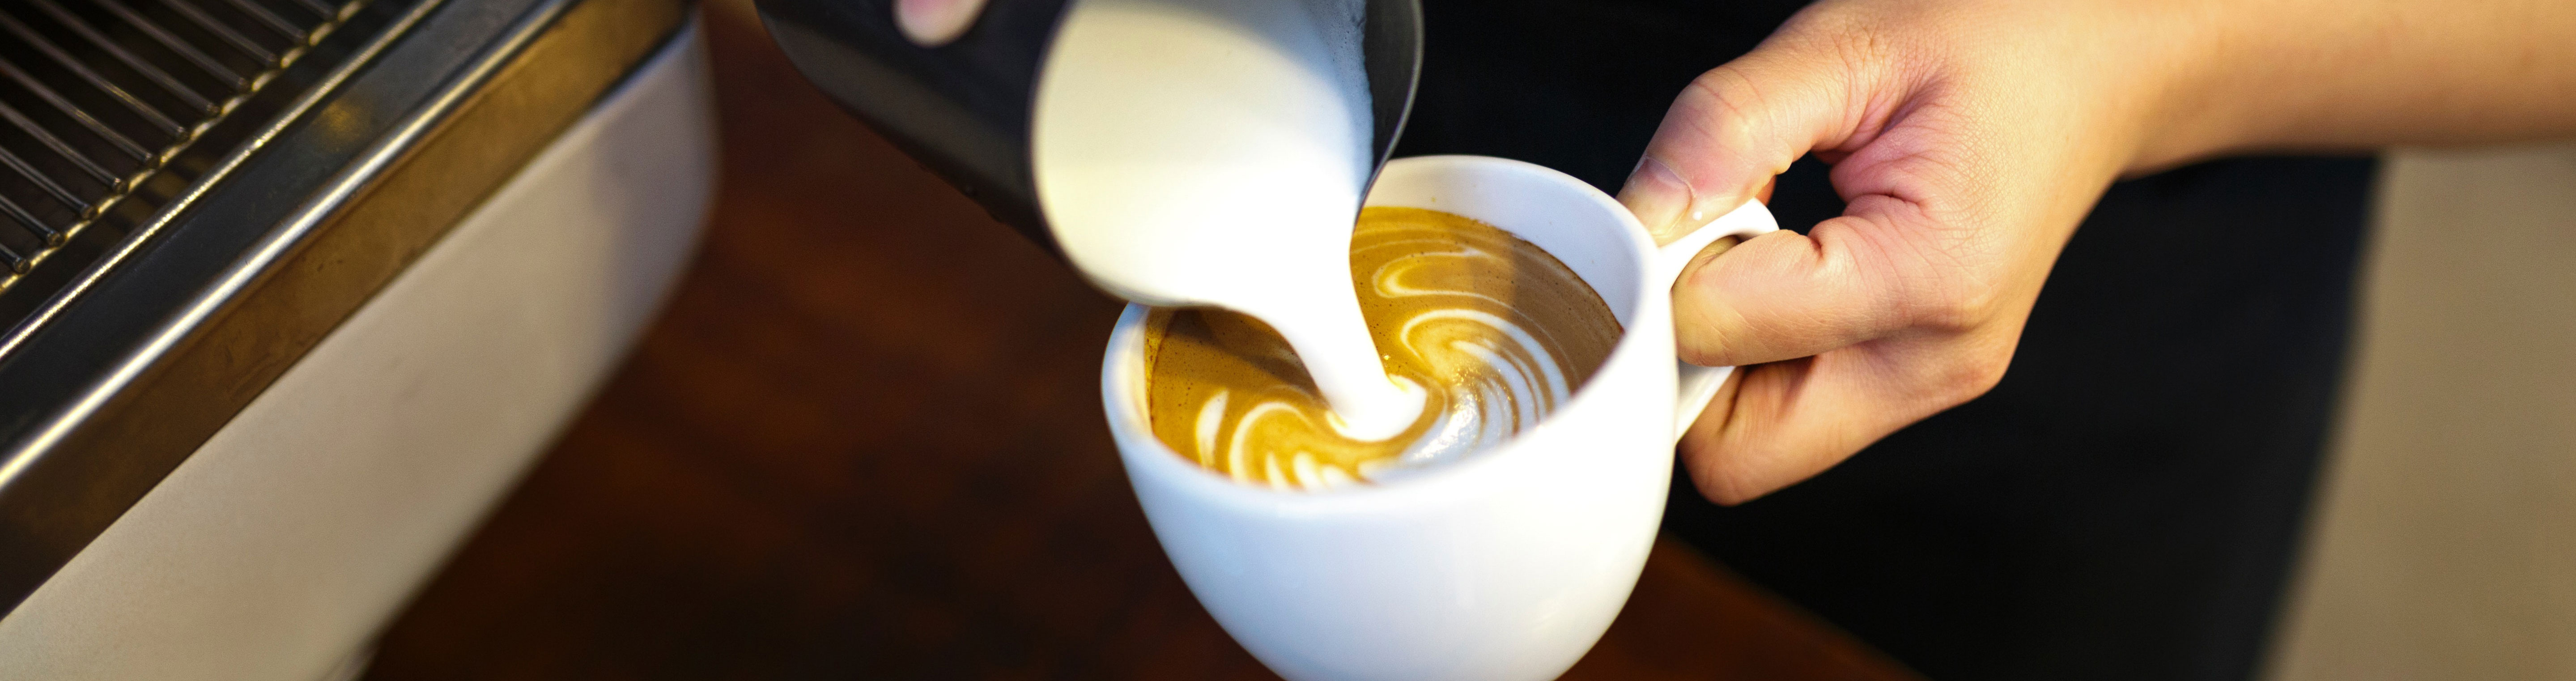 Person pouring coffee